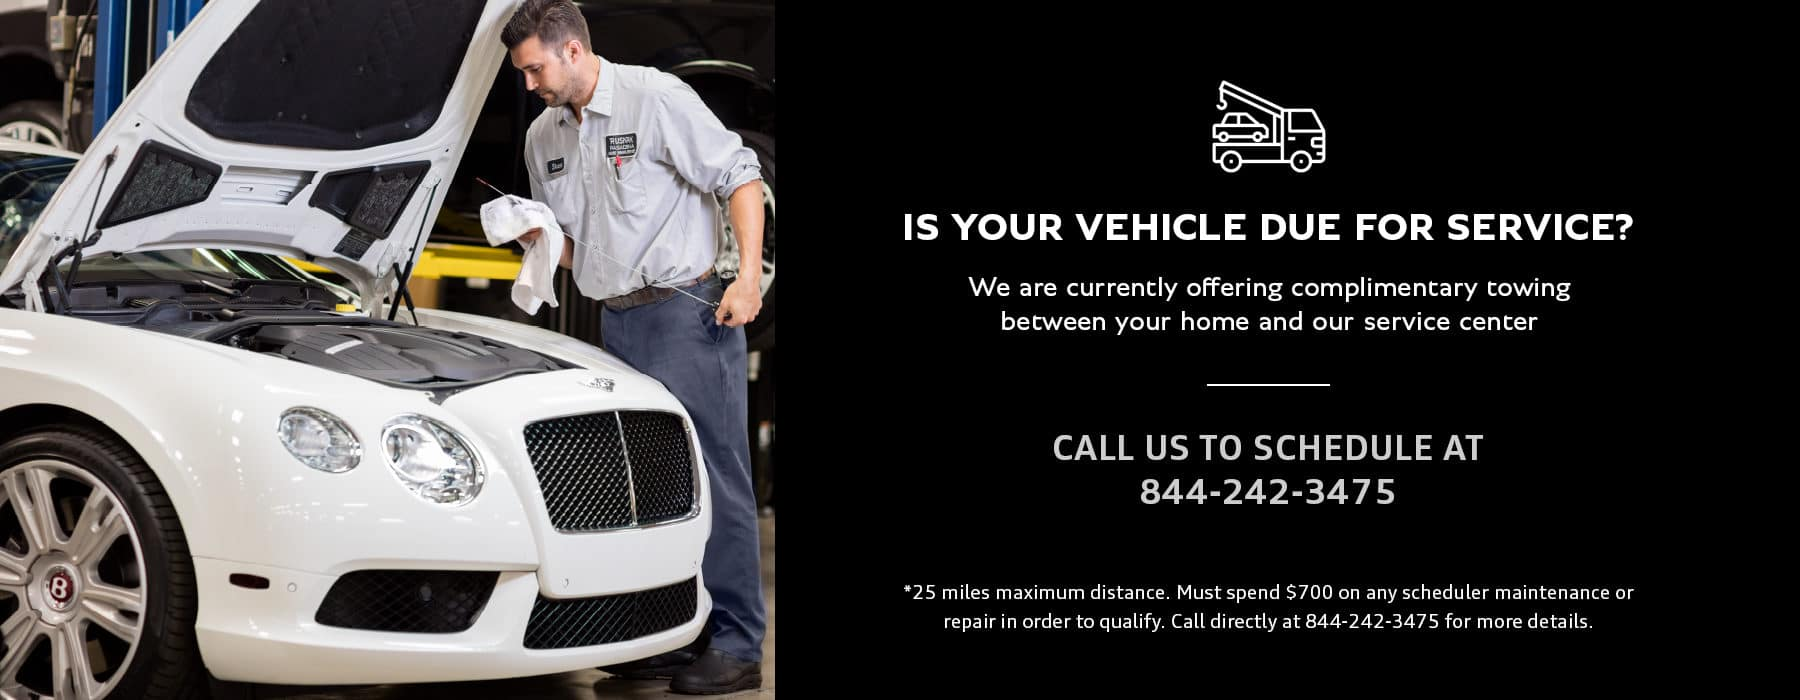 BE Towing Service slider